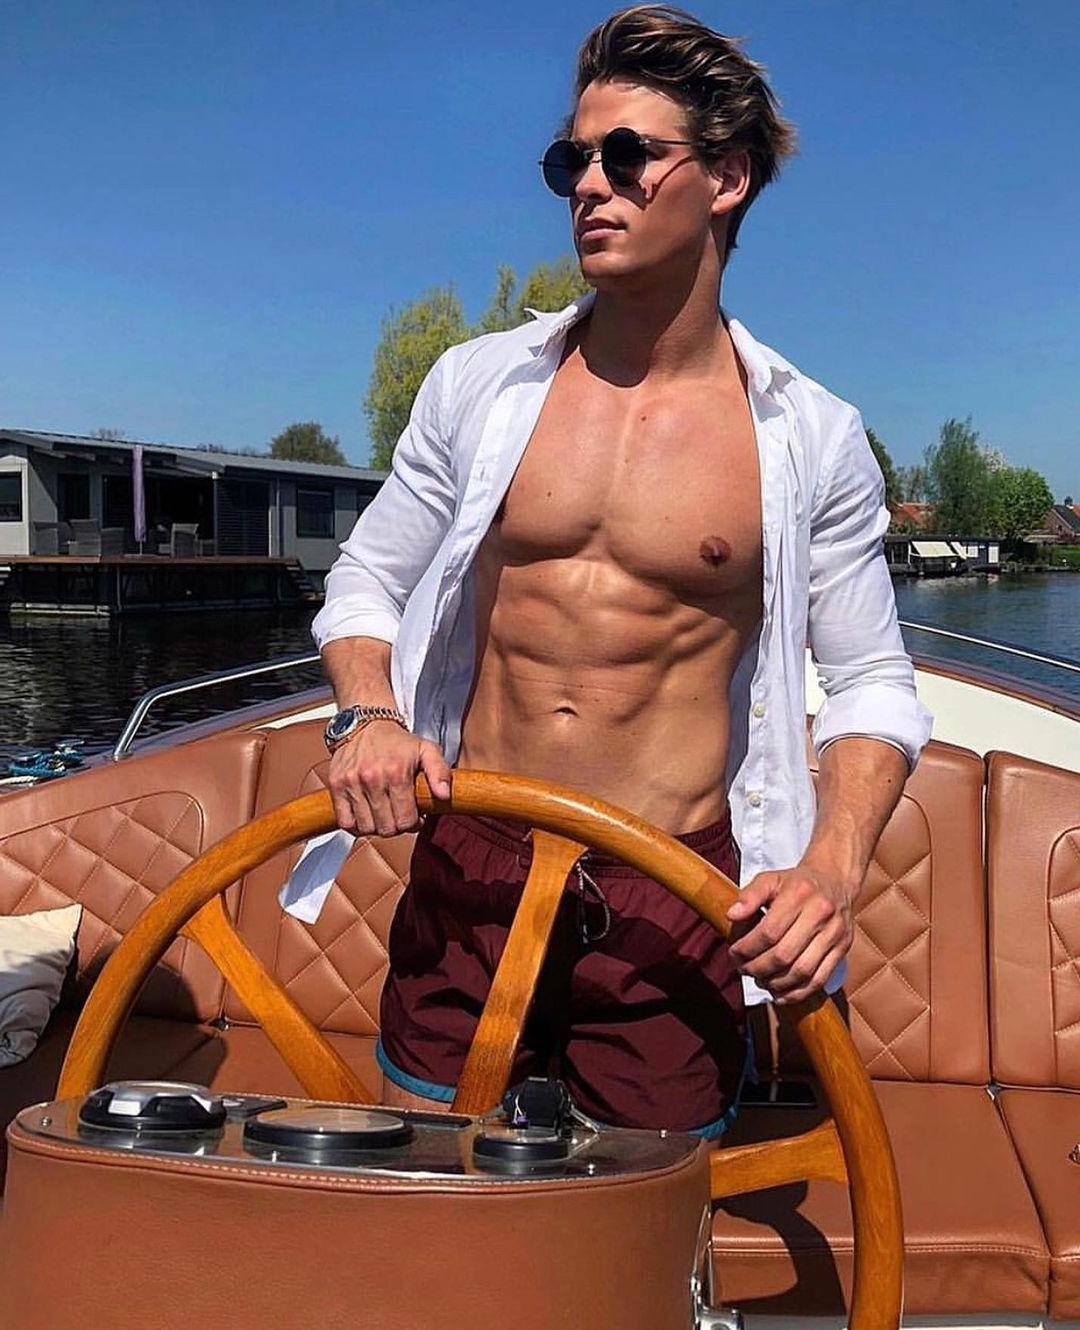 handsome-shirtless-fit-muscle-pecs-abs-hunk-young-male-model-sunglasses-thom-strijd-boat-driving